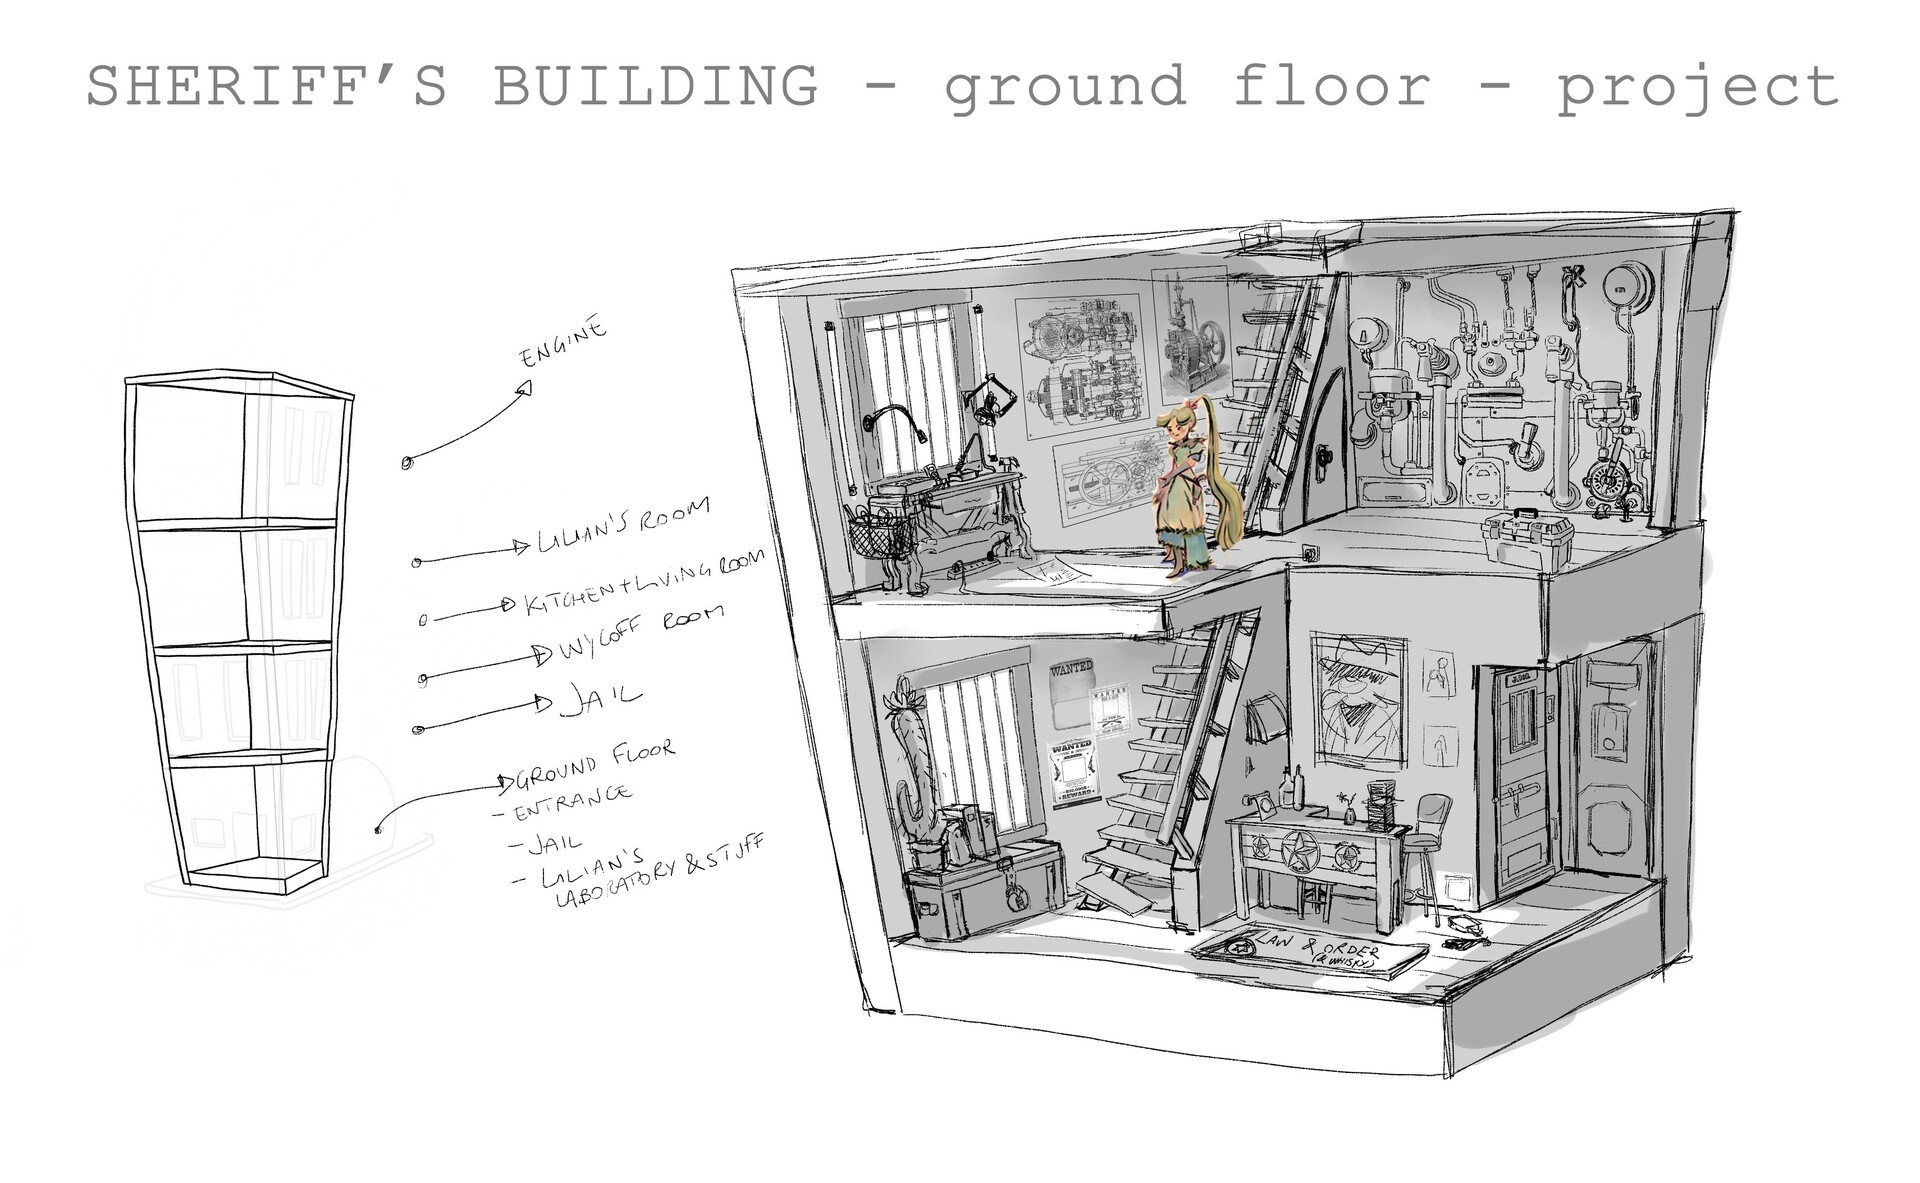 Elisa moriconi sheriff building 04 int ground floor sketch